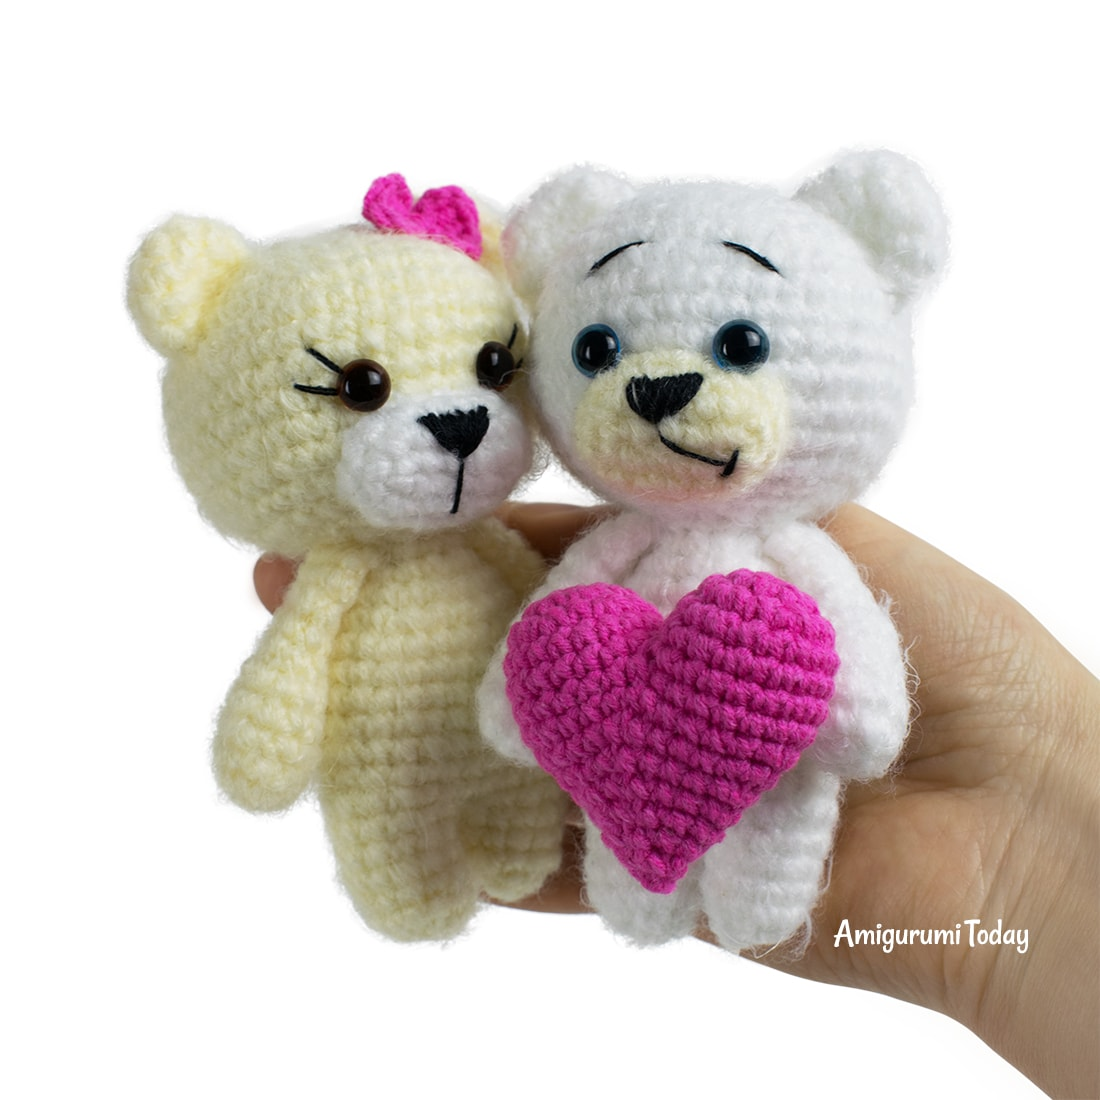 Crochet bears with heart pattern by Amigurumi Today